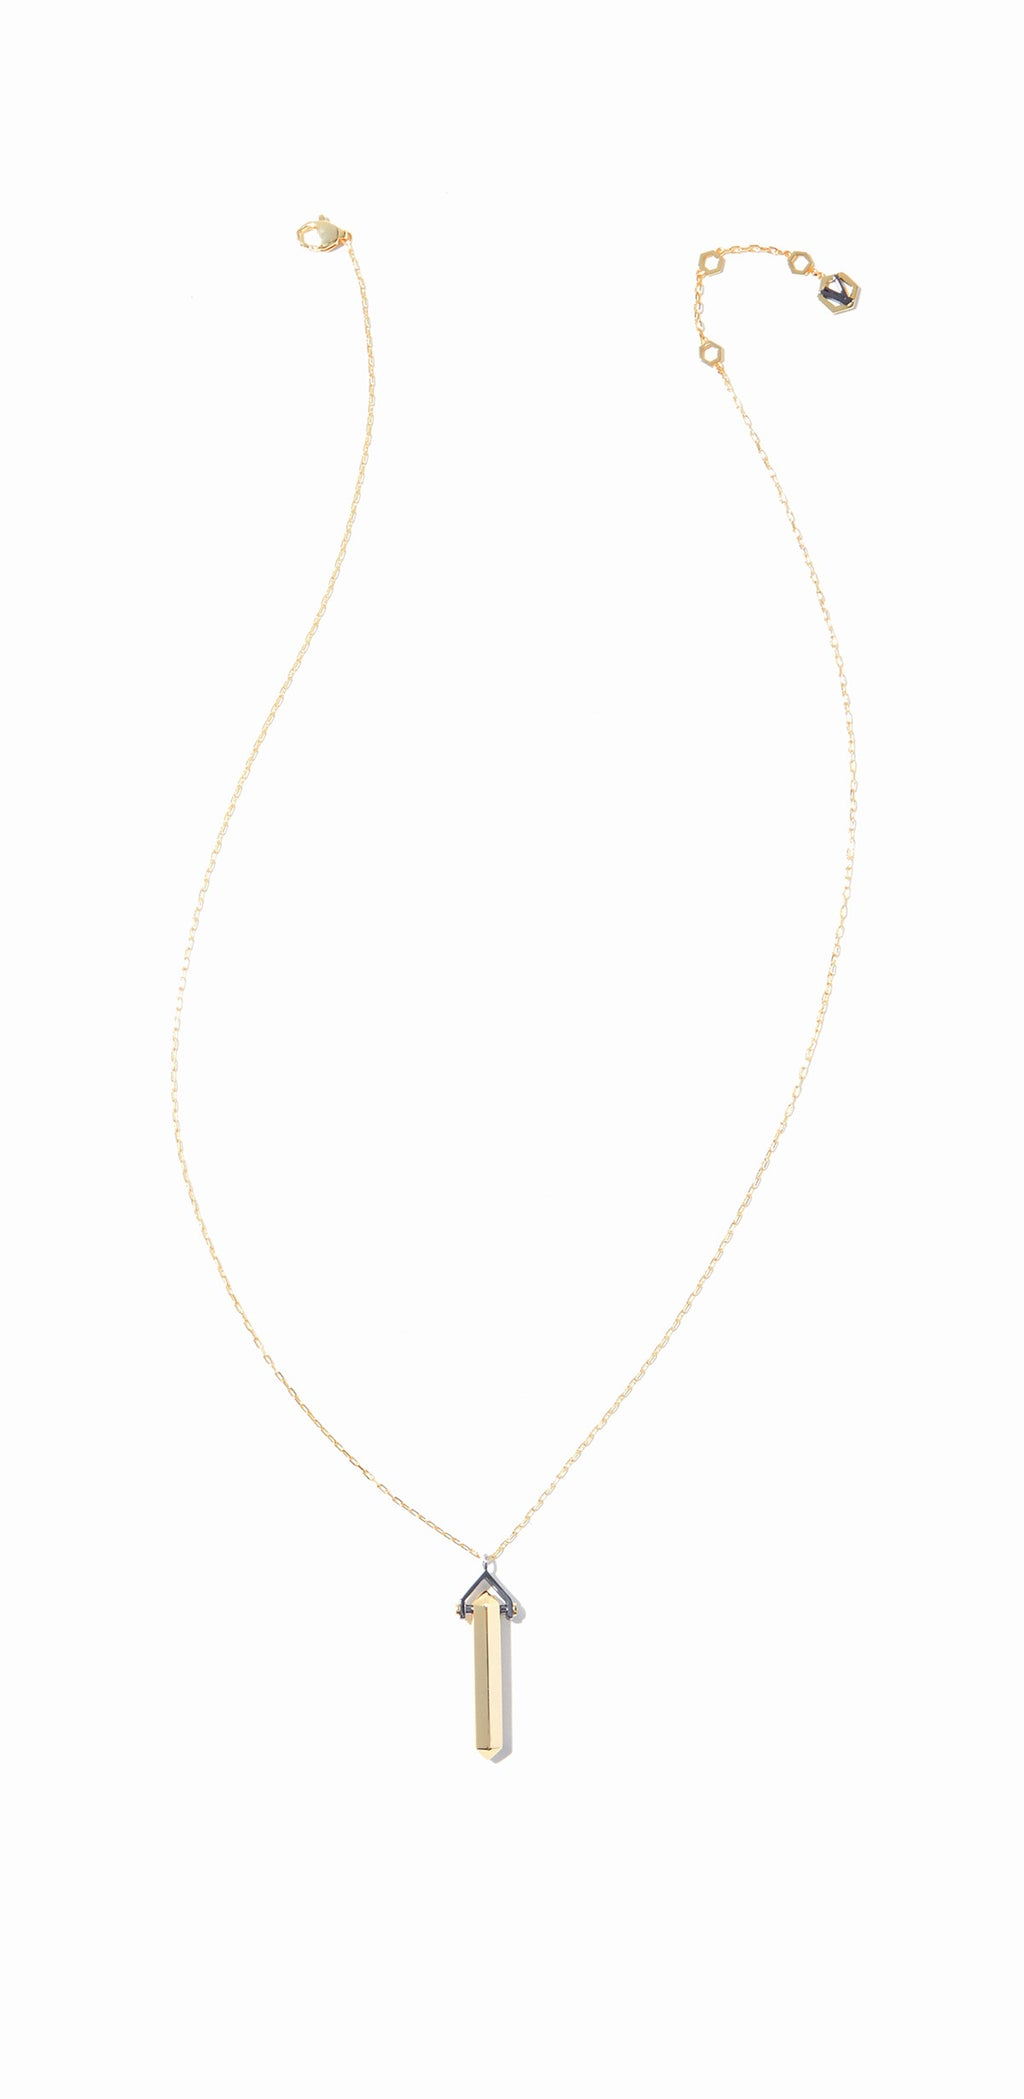 Aurum Long Necklace - 2 Tone Gold and Hematite